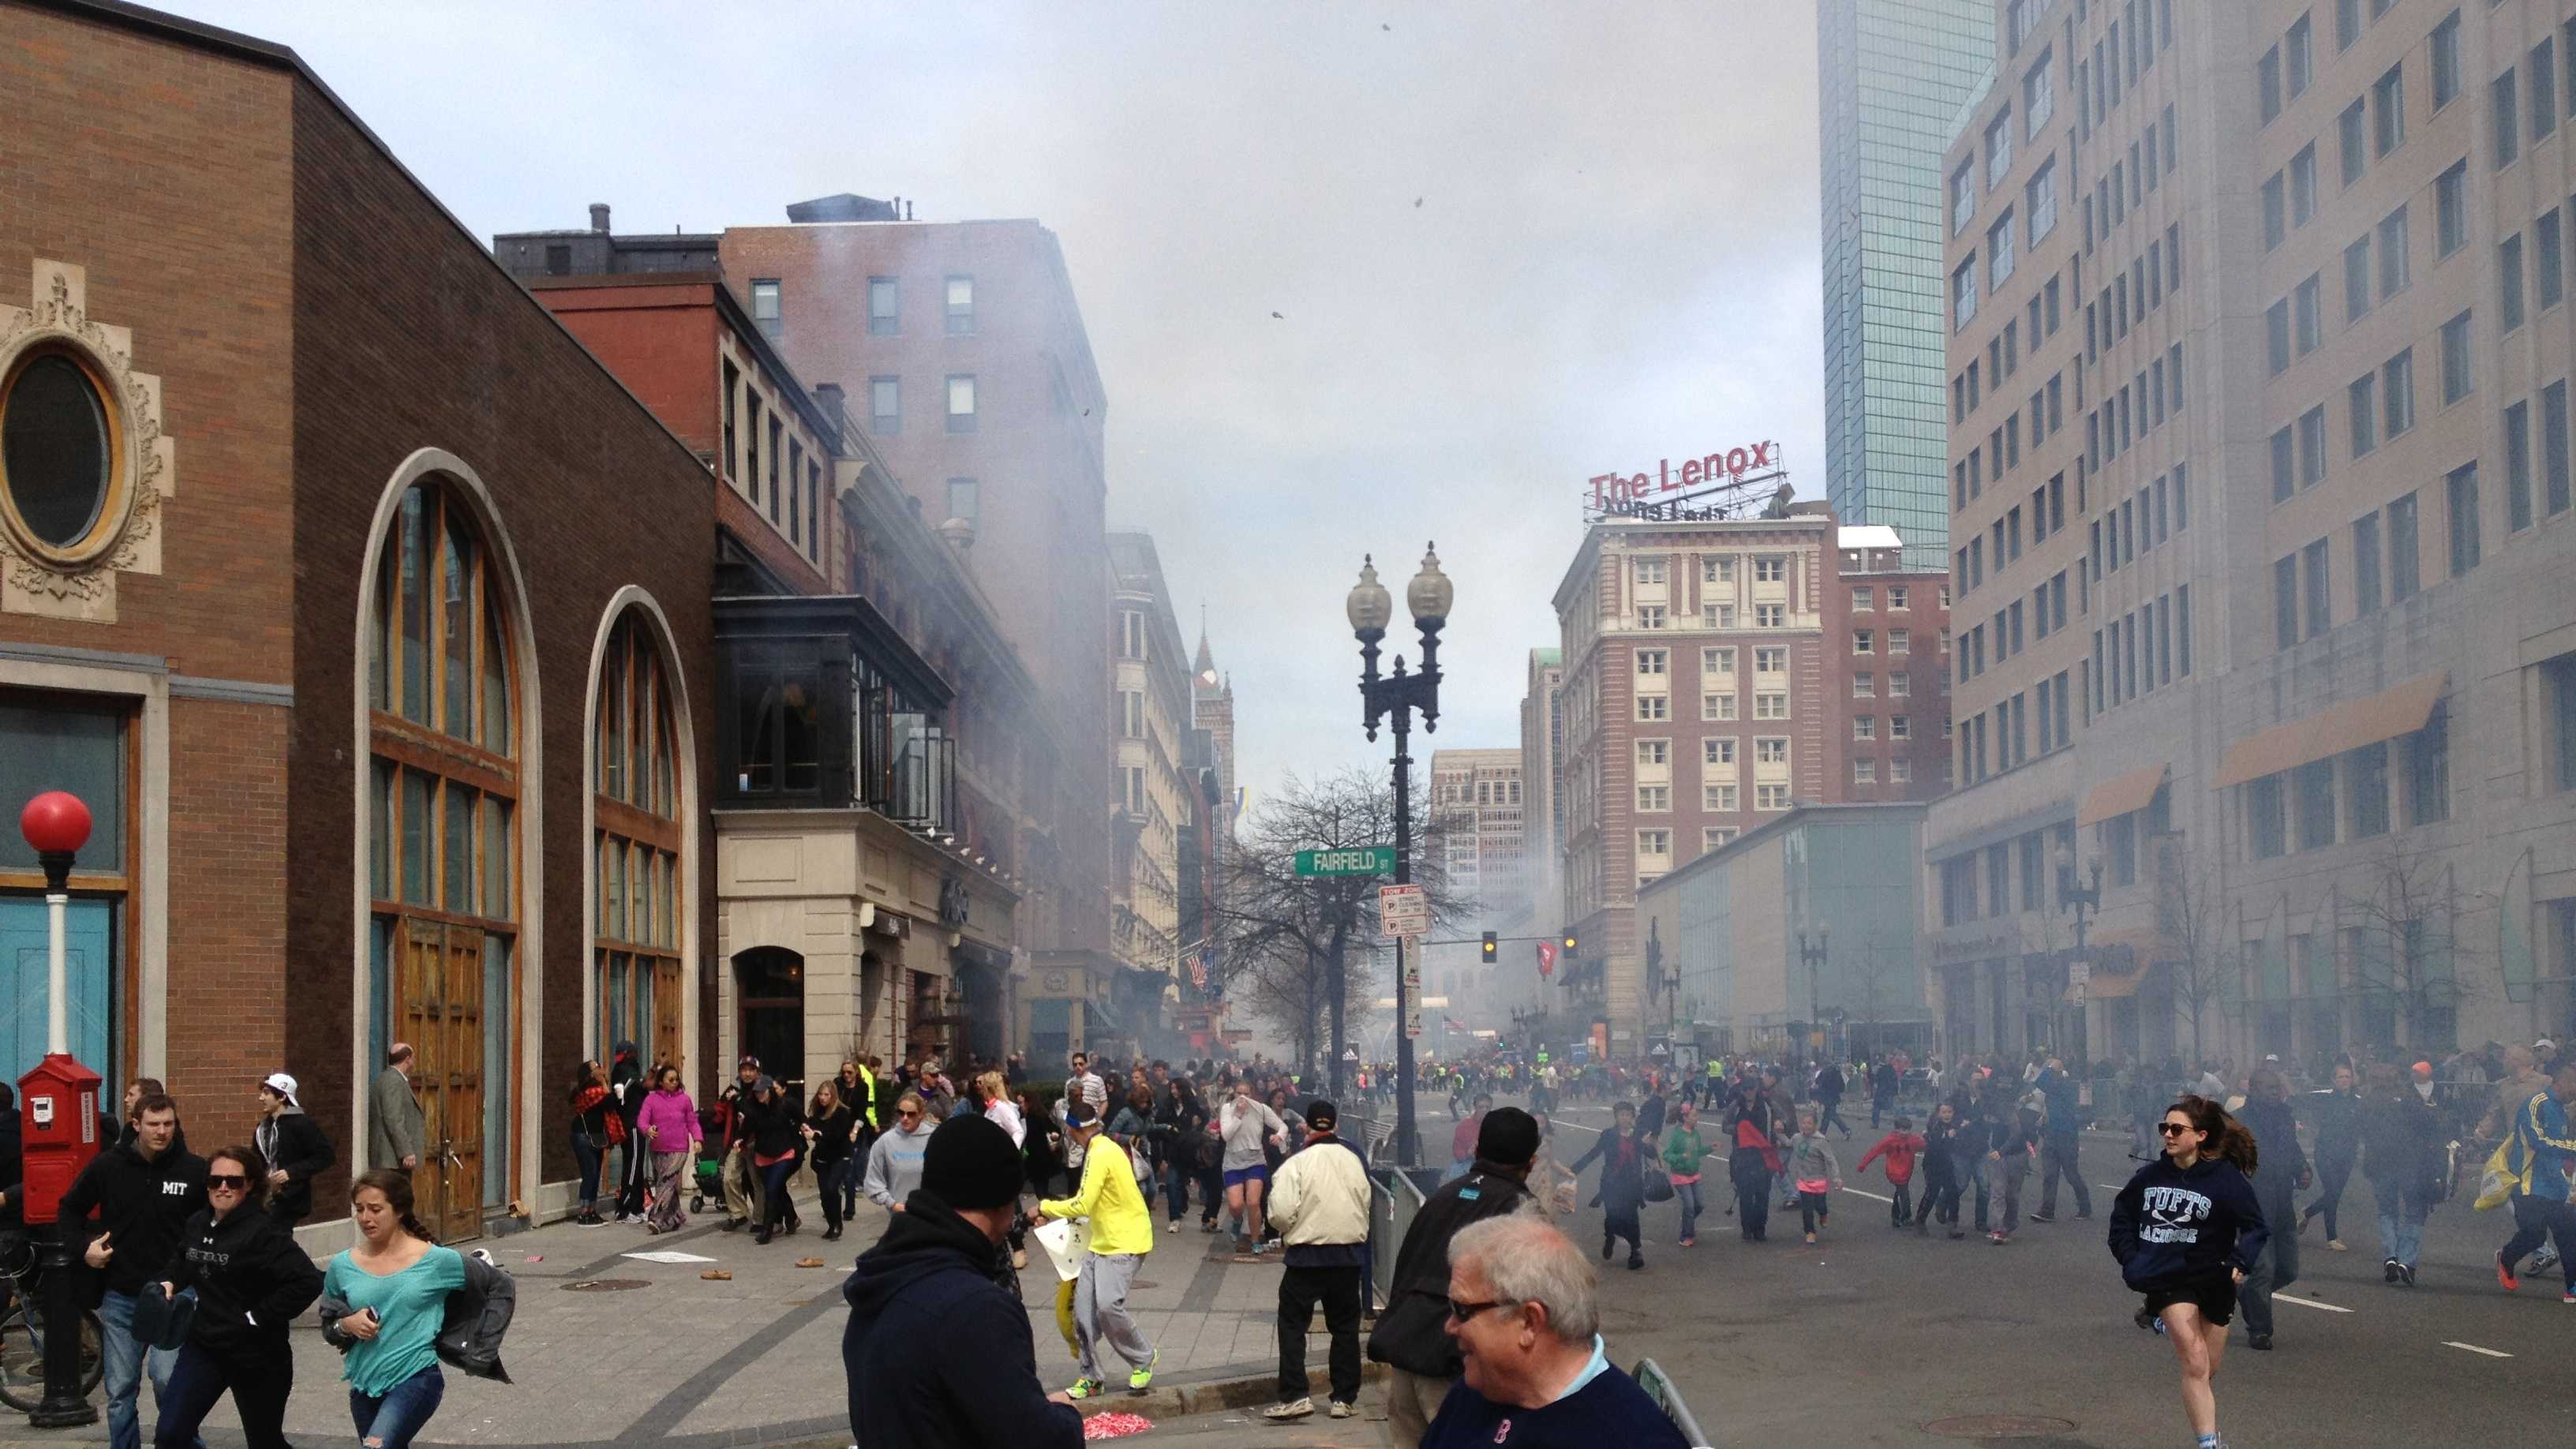 You can see Dzhokhar A. Tsarnaev on the left near the building. Credit: David Green